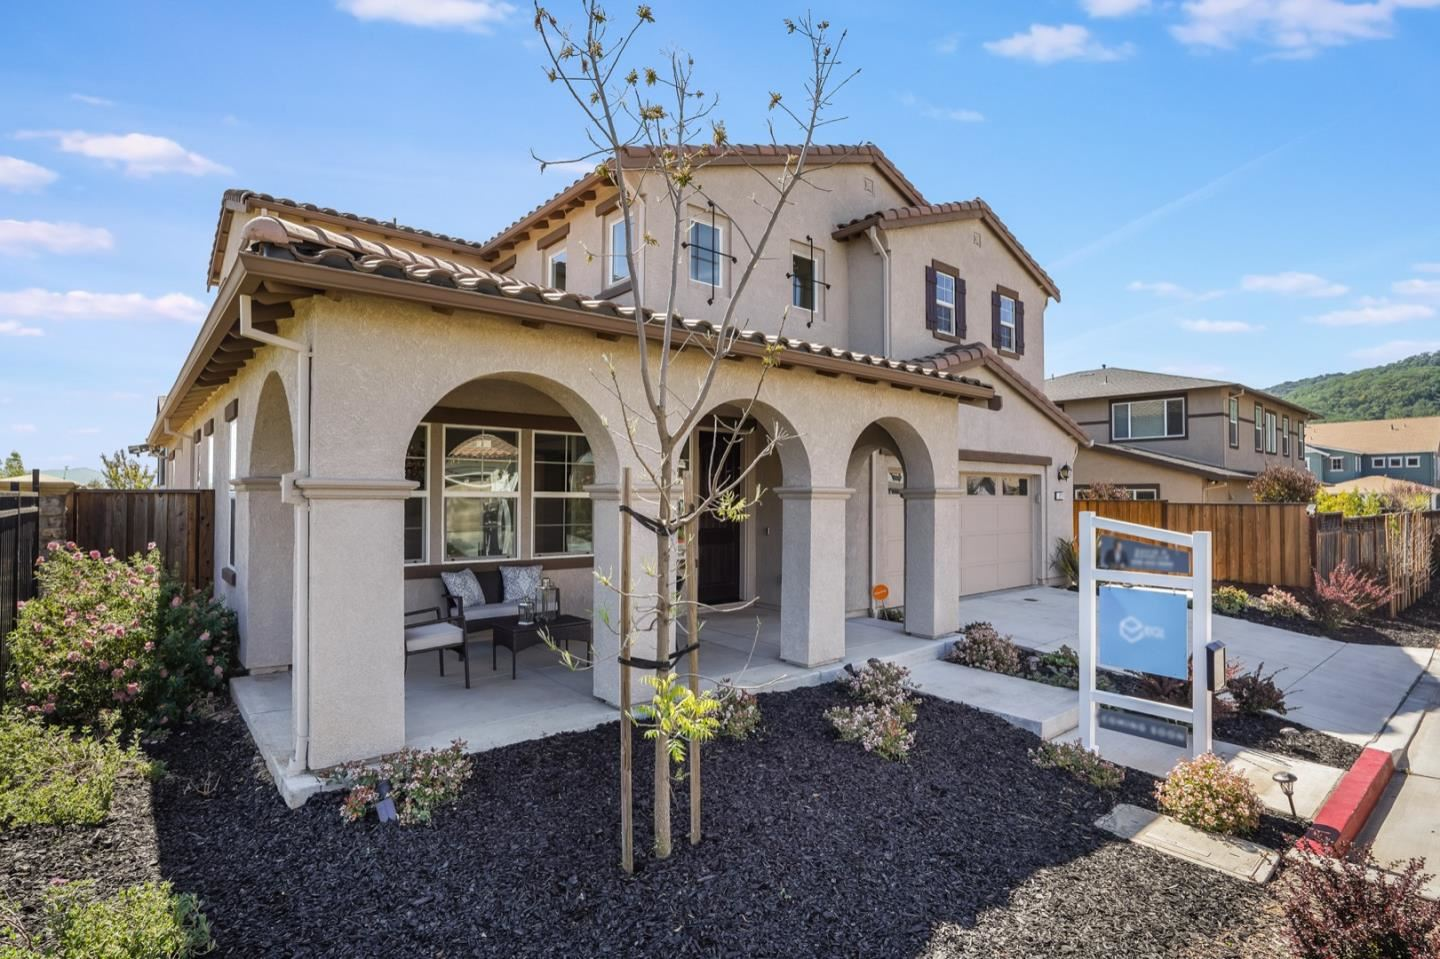 Photo for 1217 Viognier Way, GILROY, CA 95020 (MLS # ML81838260)